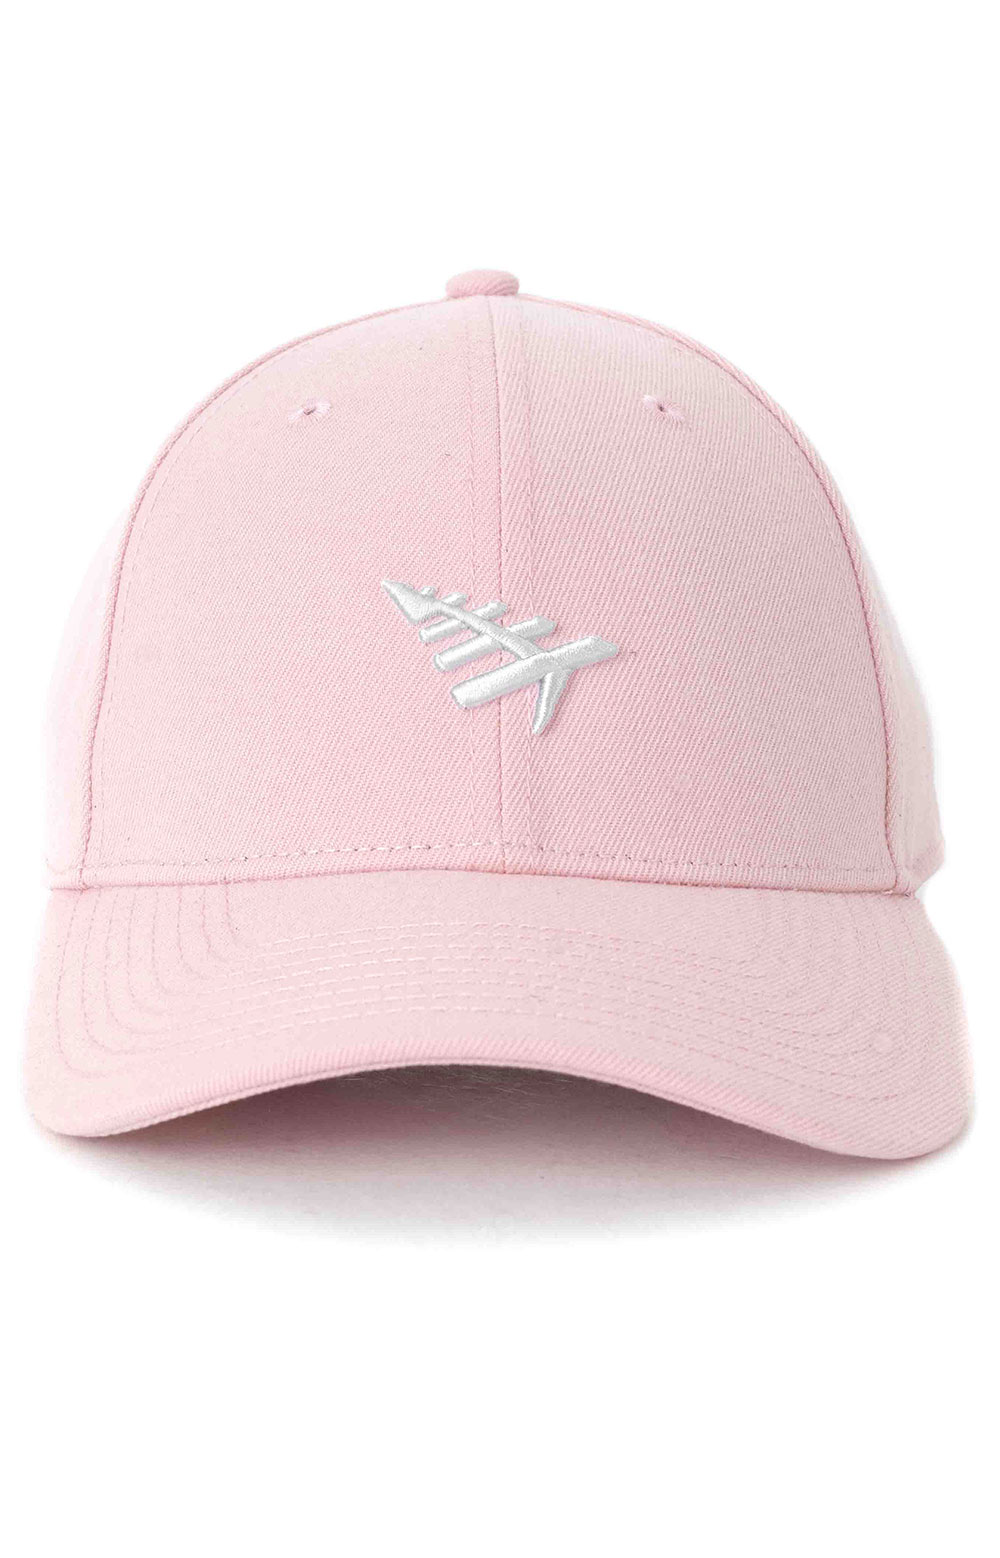 Icon II Dad Hat - Washed Pink  2